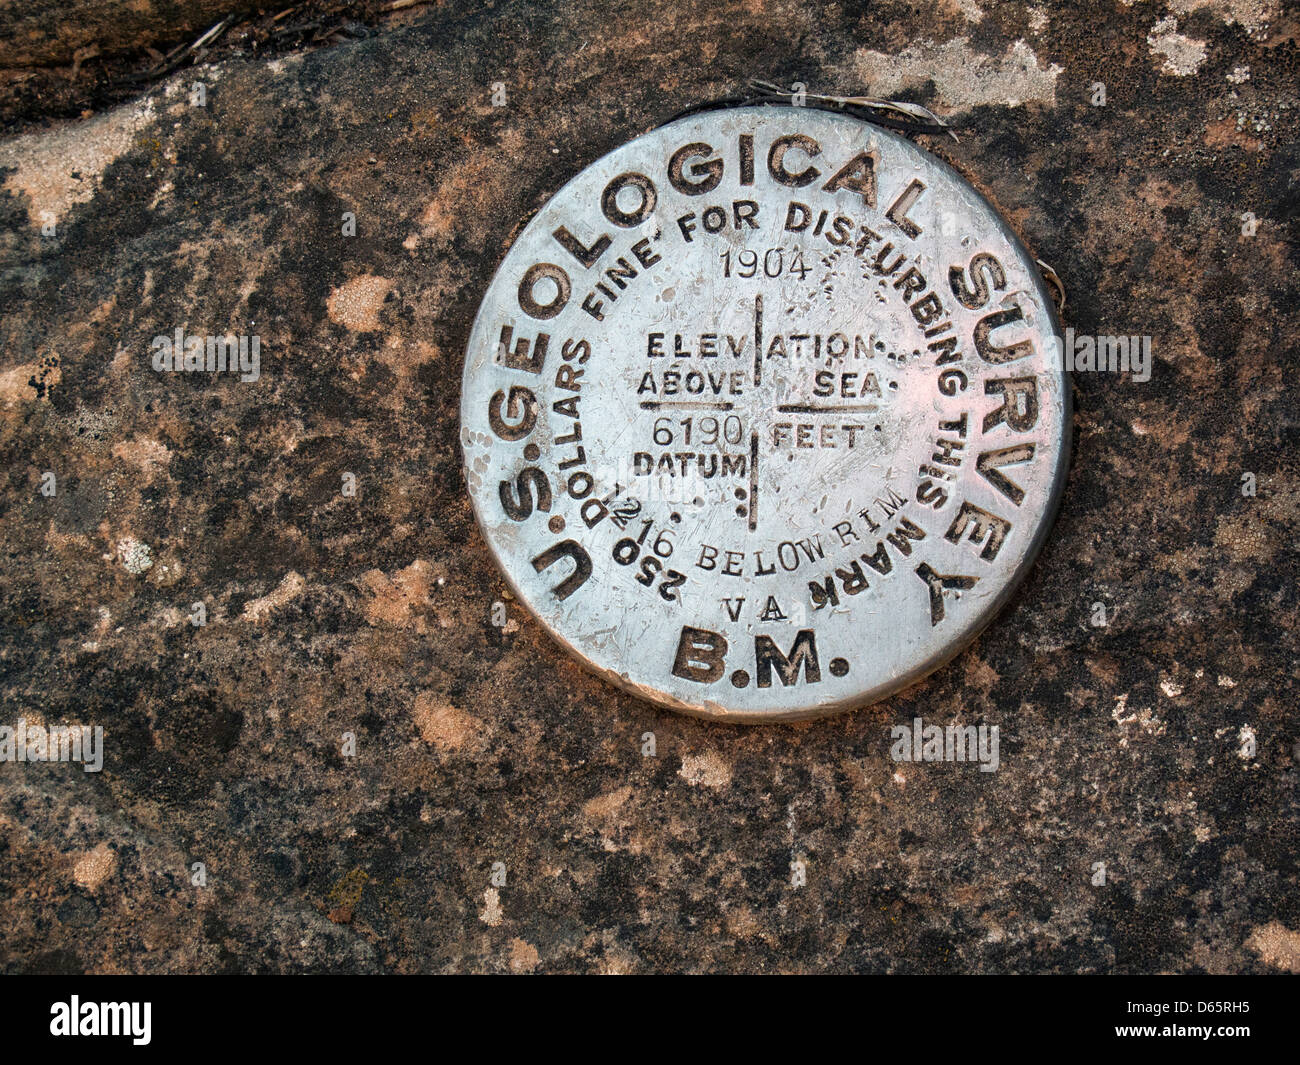 Grand Canyon National Park, Arizona - A U.S. Geological Survey bench mark 1216 feet below the south rim on the Grandview - Stock Image